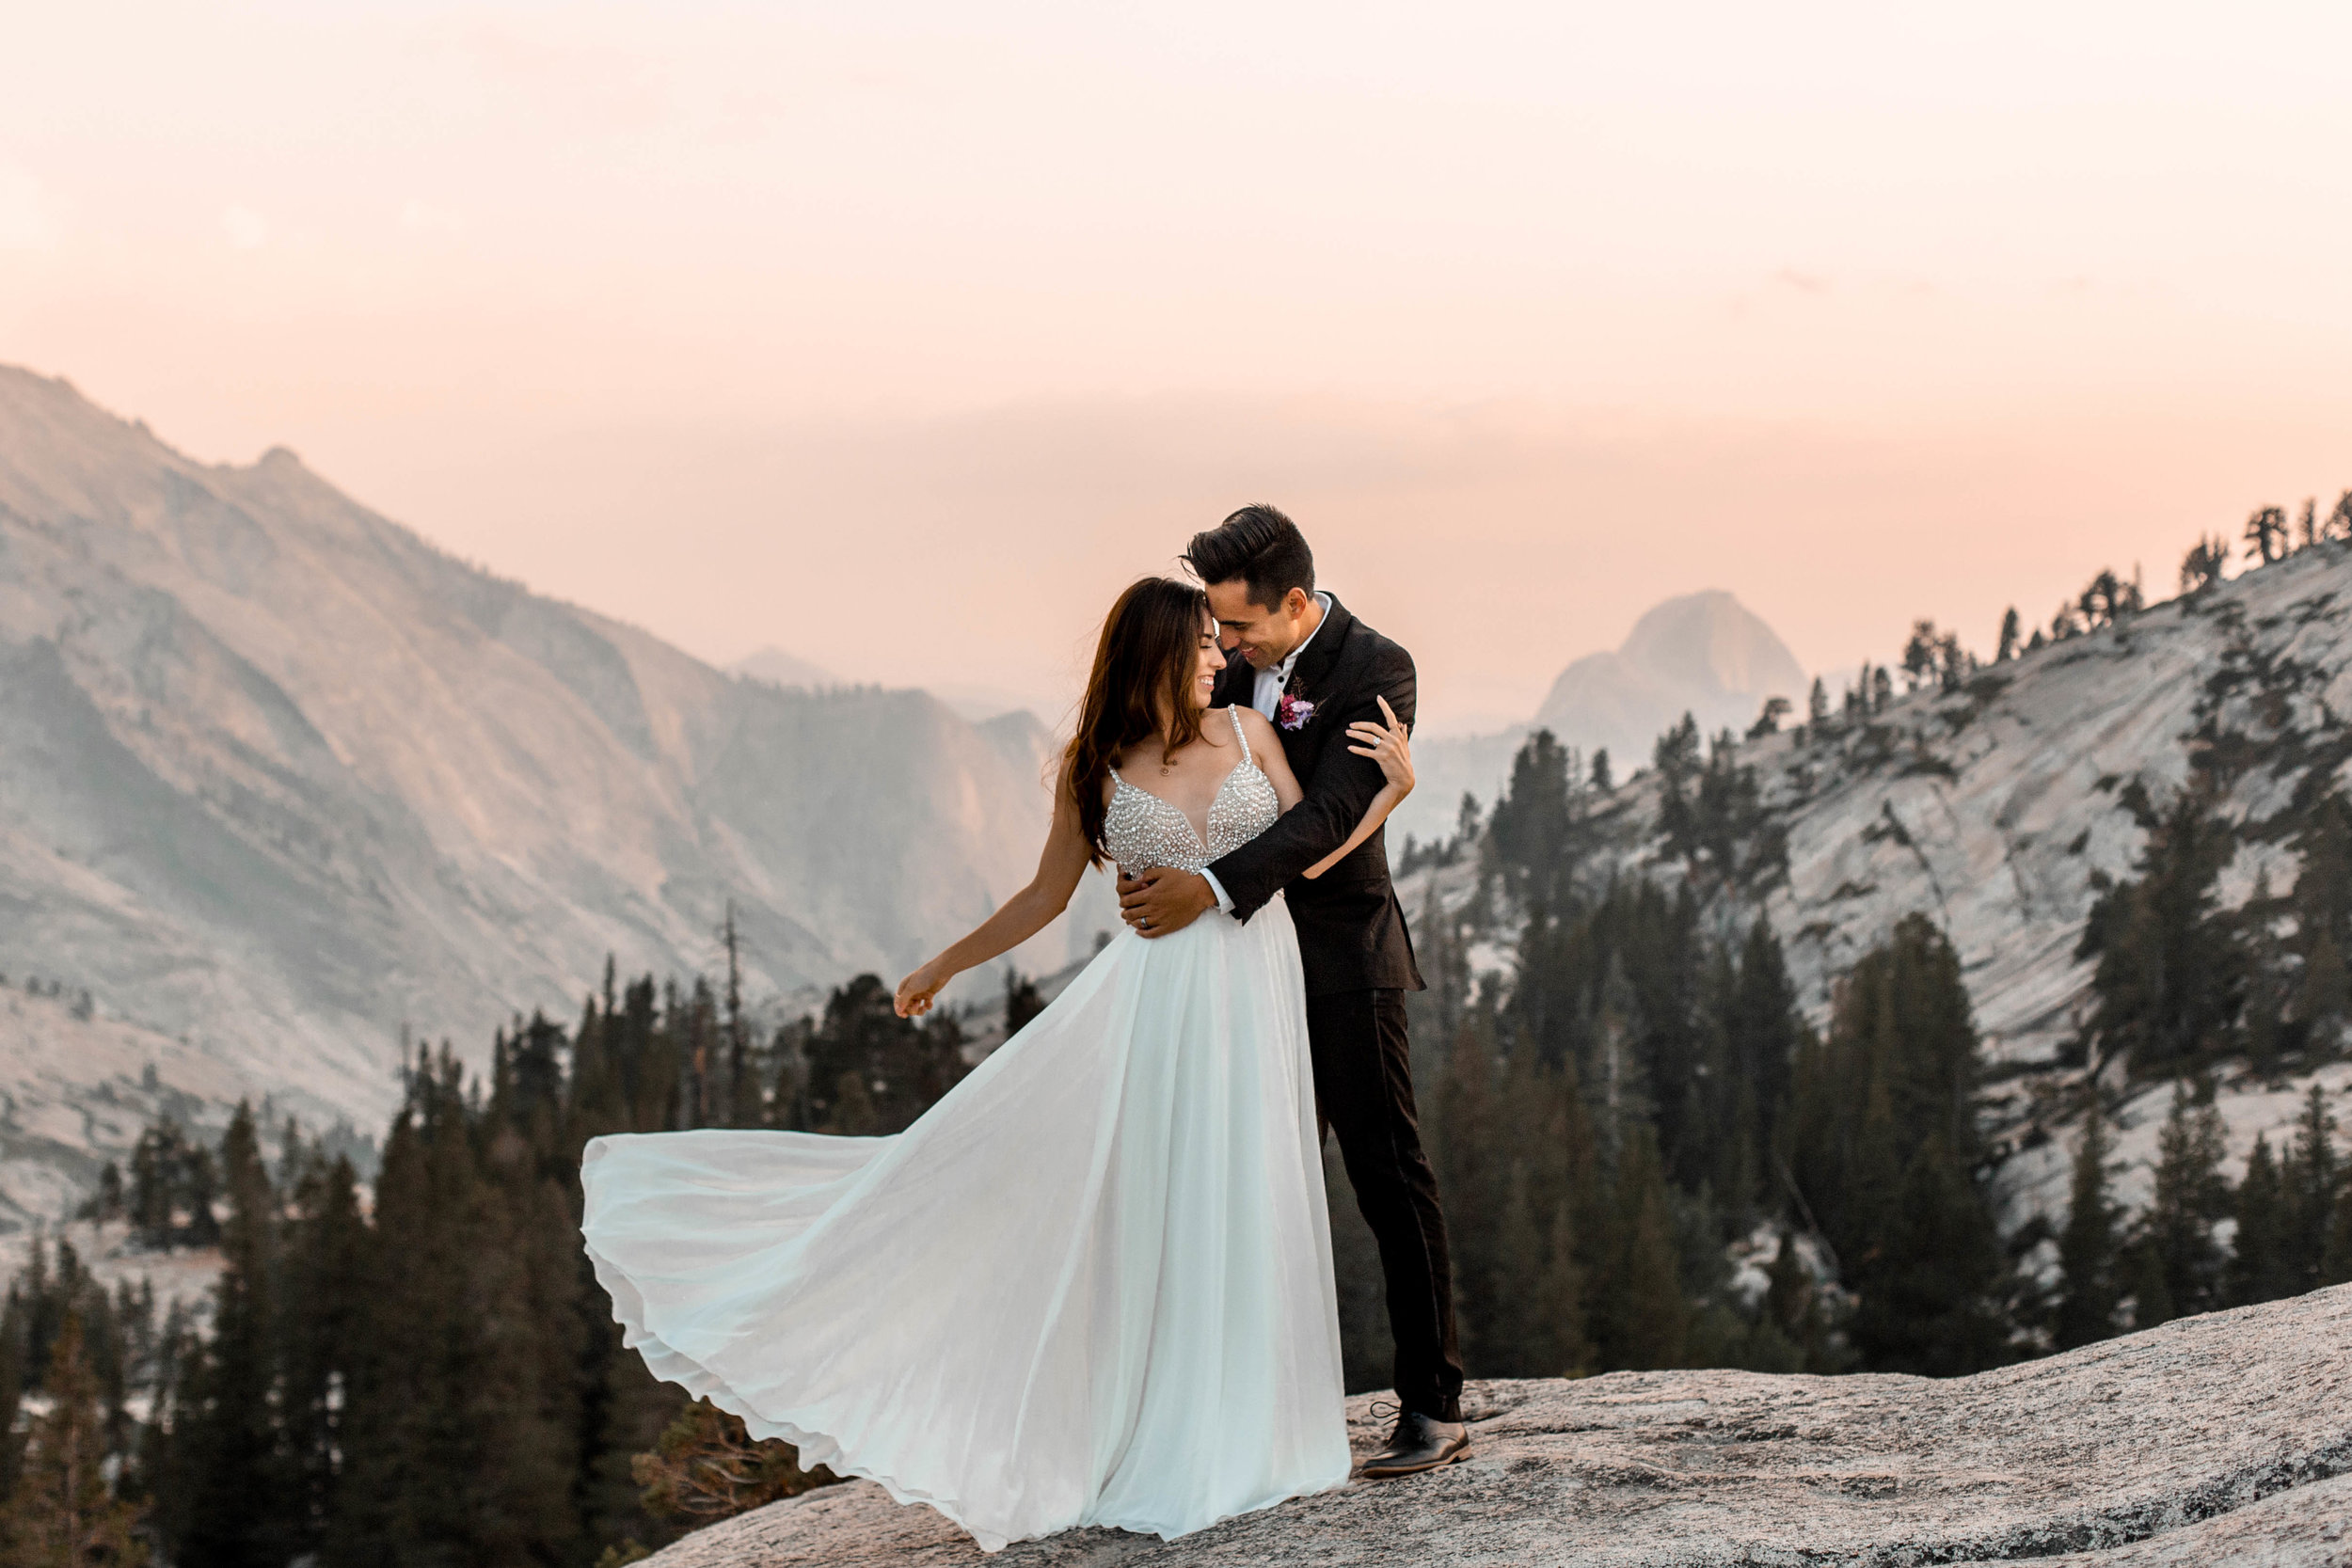 nicole-daacke-photography-yosemite-national-park-wedding-sunset-elopement-olmstead-point-yosemite-adventure-wedding-photographer-adventurous-elopement-destination-wedding-national-park-wedding-photography-1753.jpg